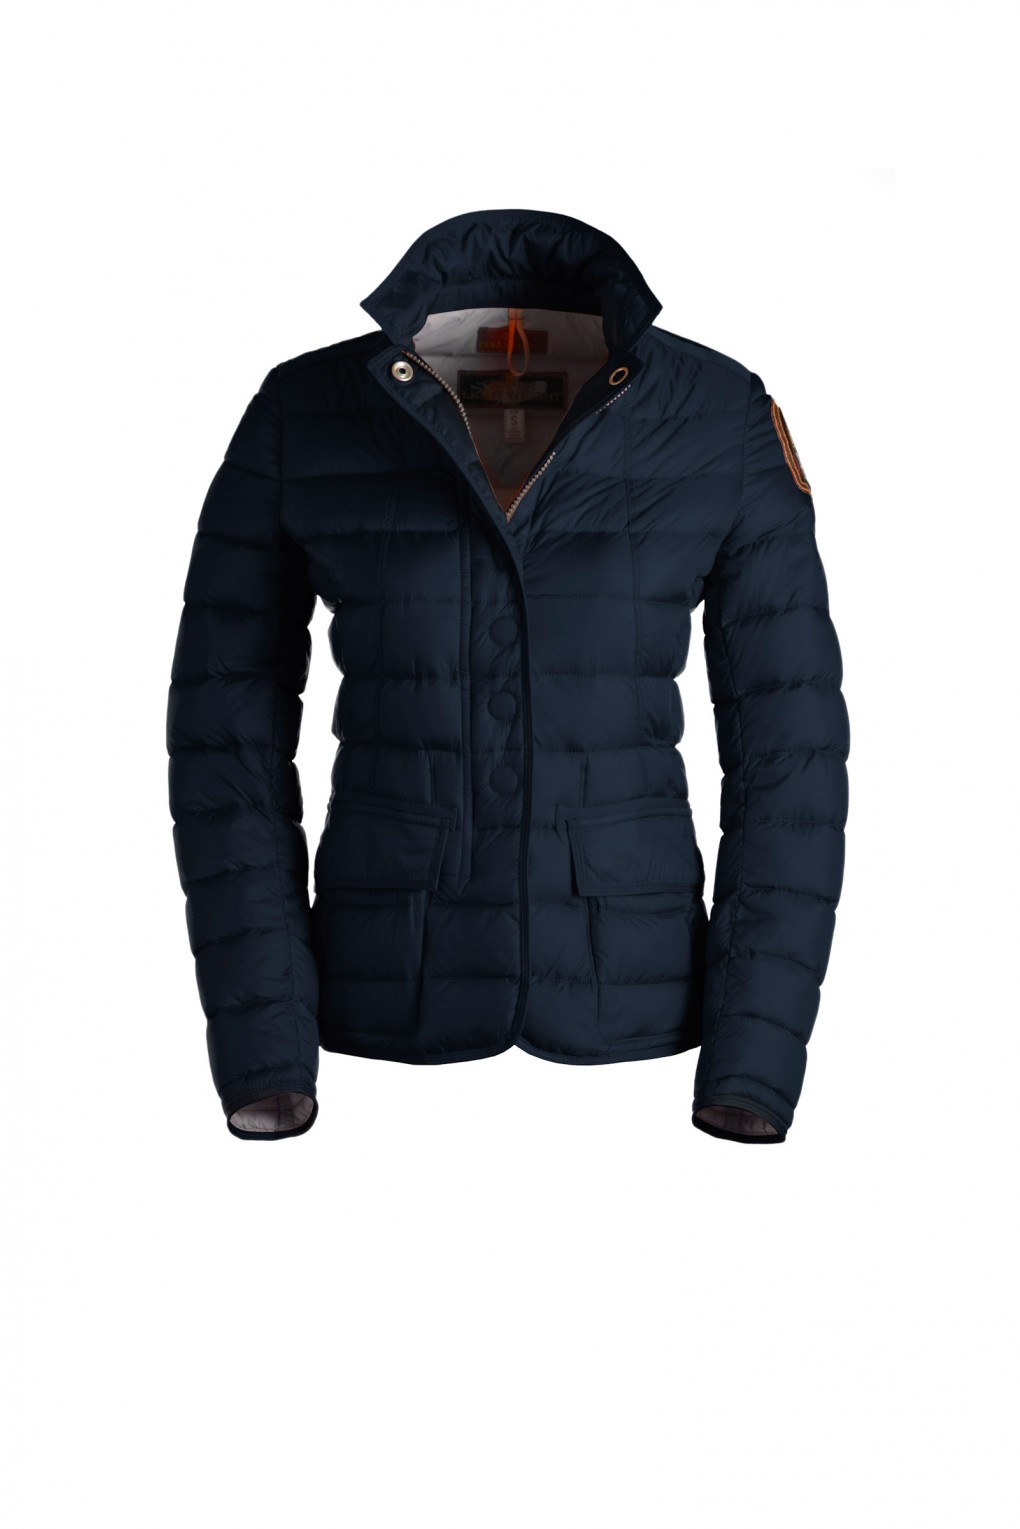 parajumpers ALISEE 6 woman outerwear Marine